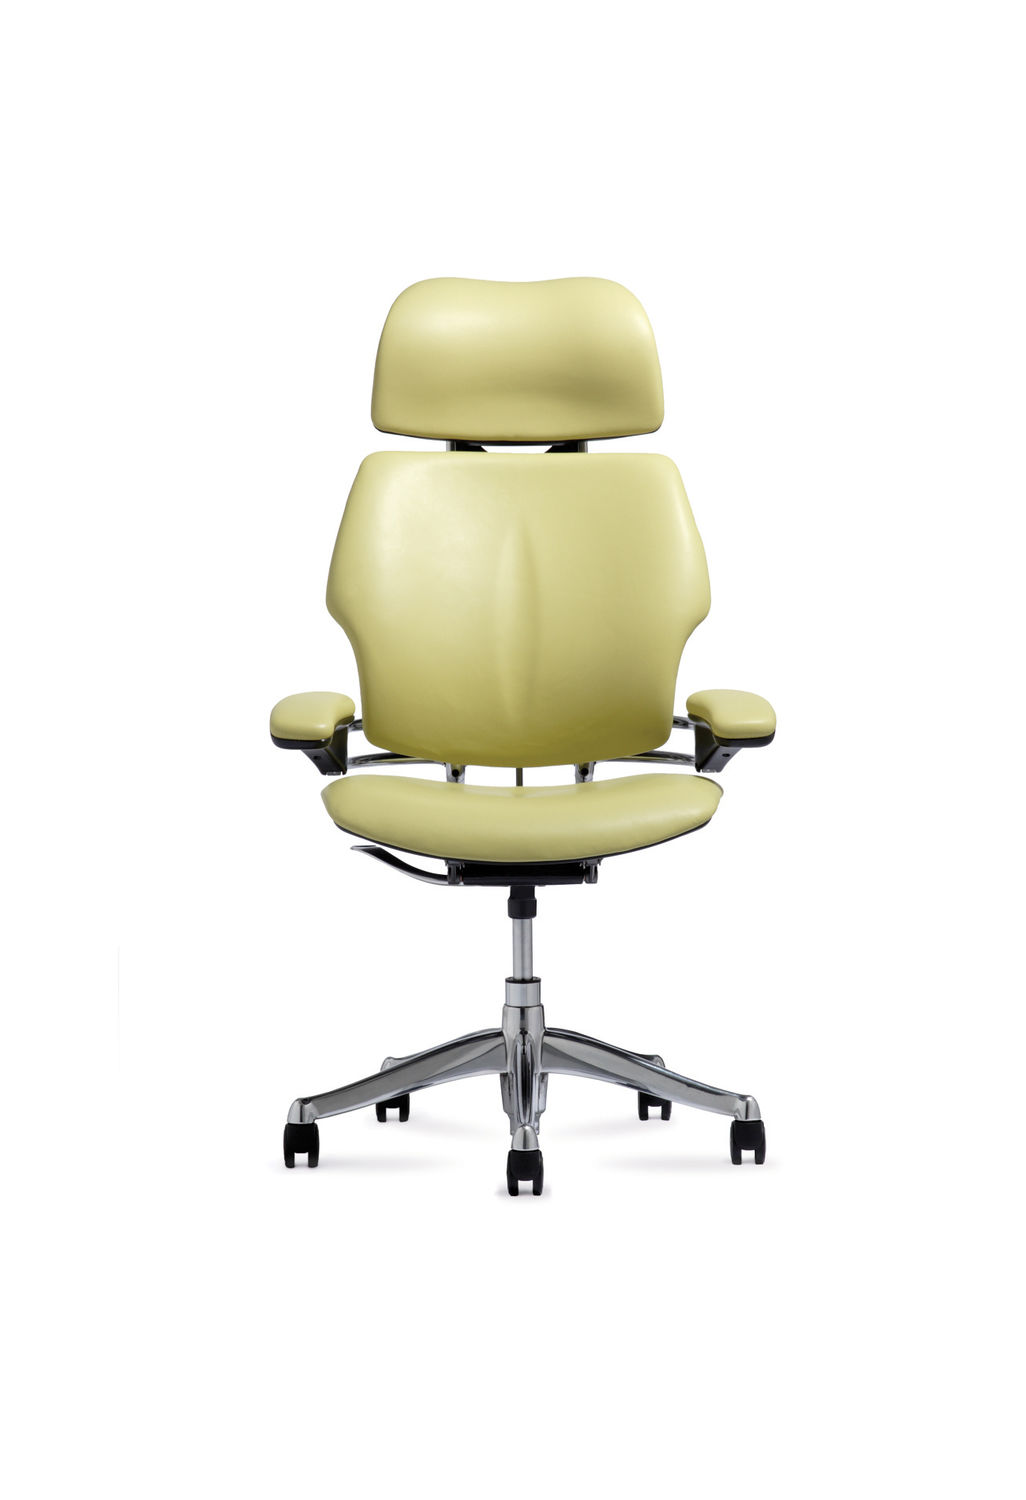 Humanscale freedom chair leather -  Contemporary Executive Chair Leather Fabric On Casters Freedom By Niels Diffrient Humanscale